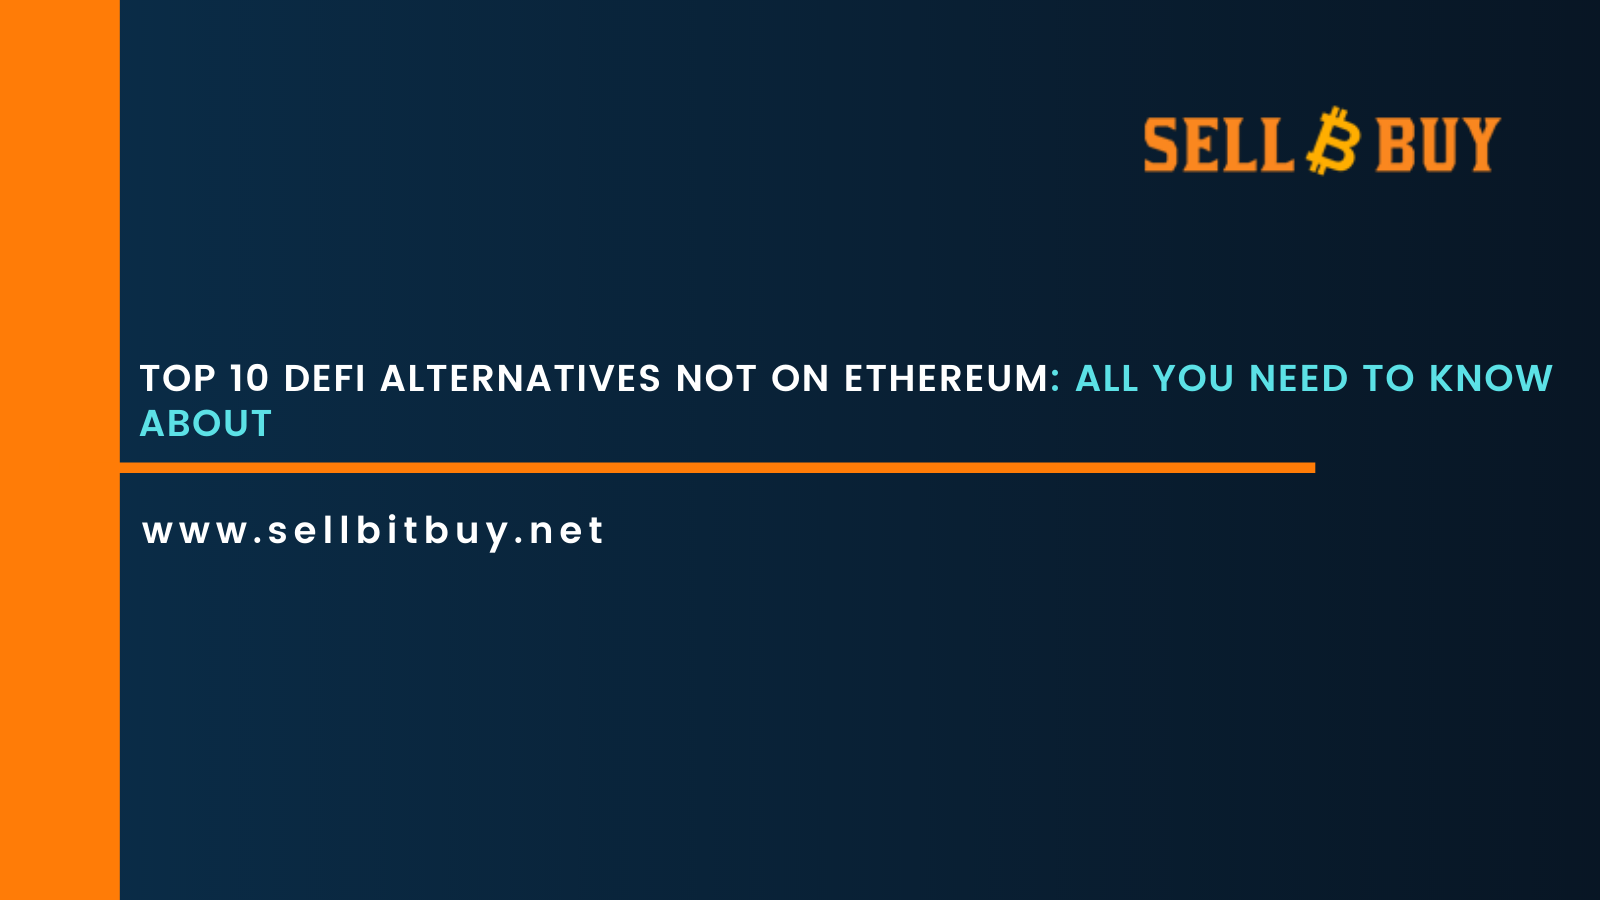 Top 10 DeFi Alternatives Not on Ethereum: All You Need To Know About